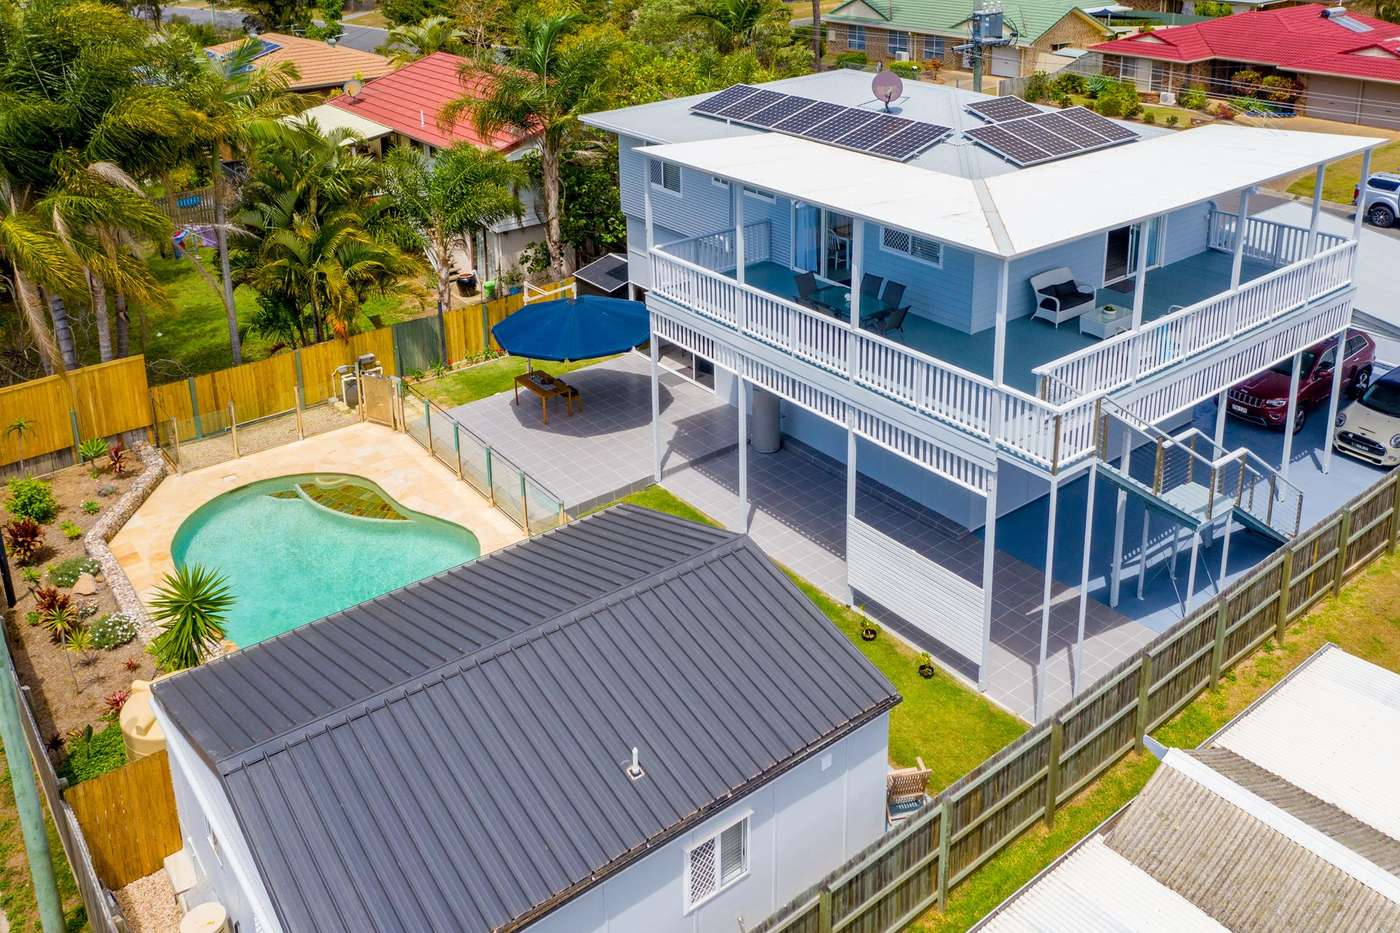 Main view of Homely house listing, 6 Holly Road, Victoria Point, QLD 4165